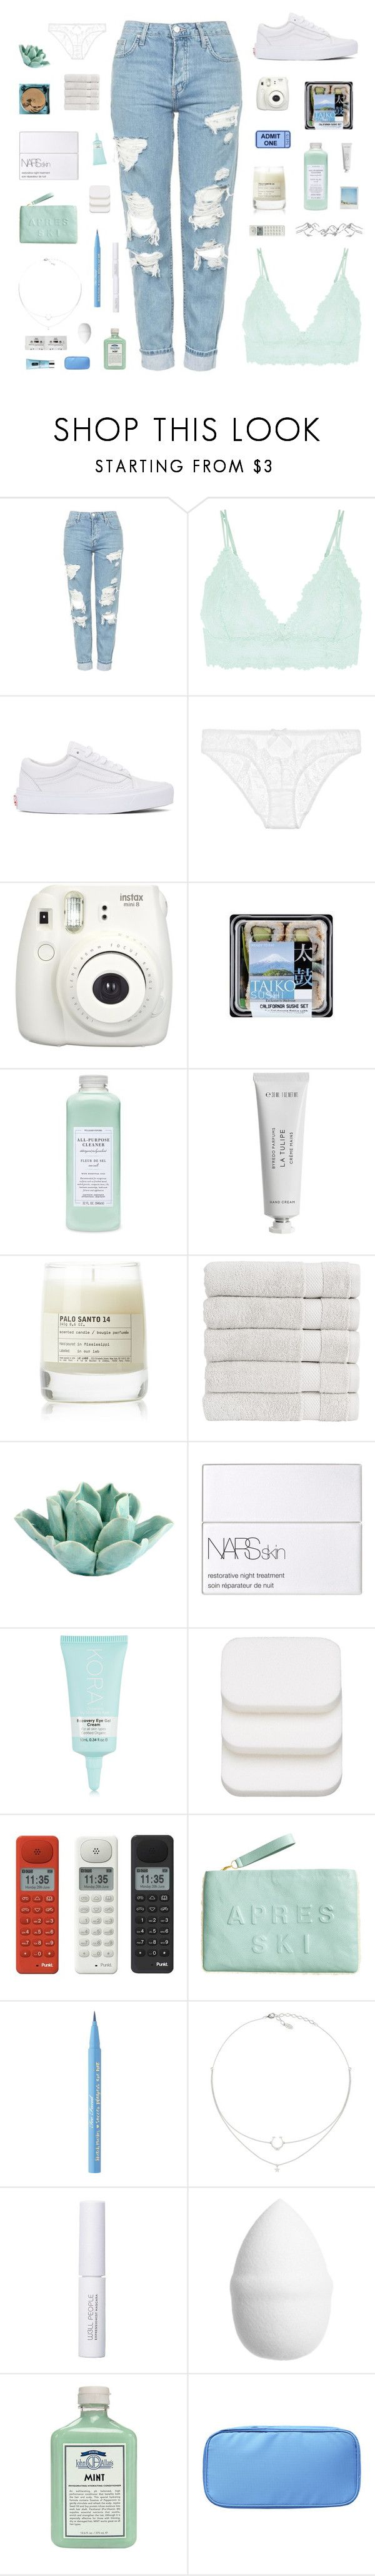 """you're giving me temptation"" by junglex ❤ liked on Polyvore featuring Topshop, Accessorize, Vans, L'Agent By Agent Provocateur, Fujifilm, Williams-Sonoma, Byredo, Le Labo, Christy and Dot & Bo"